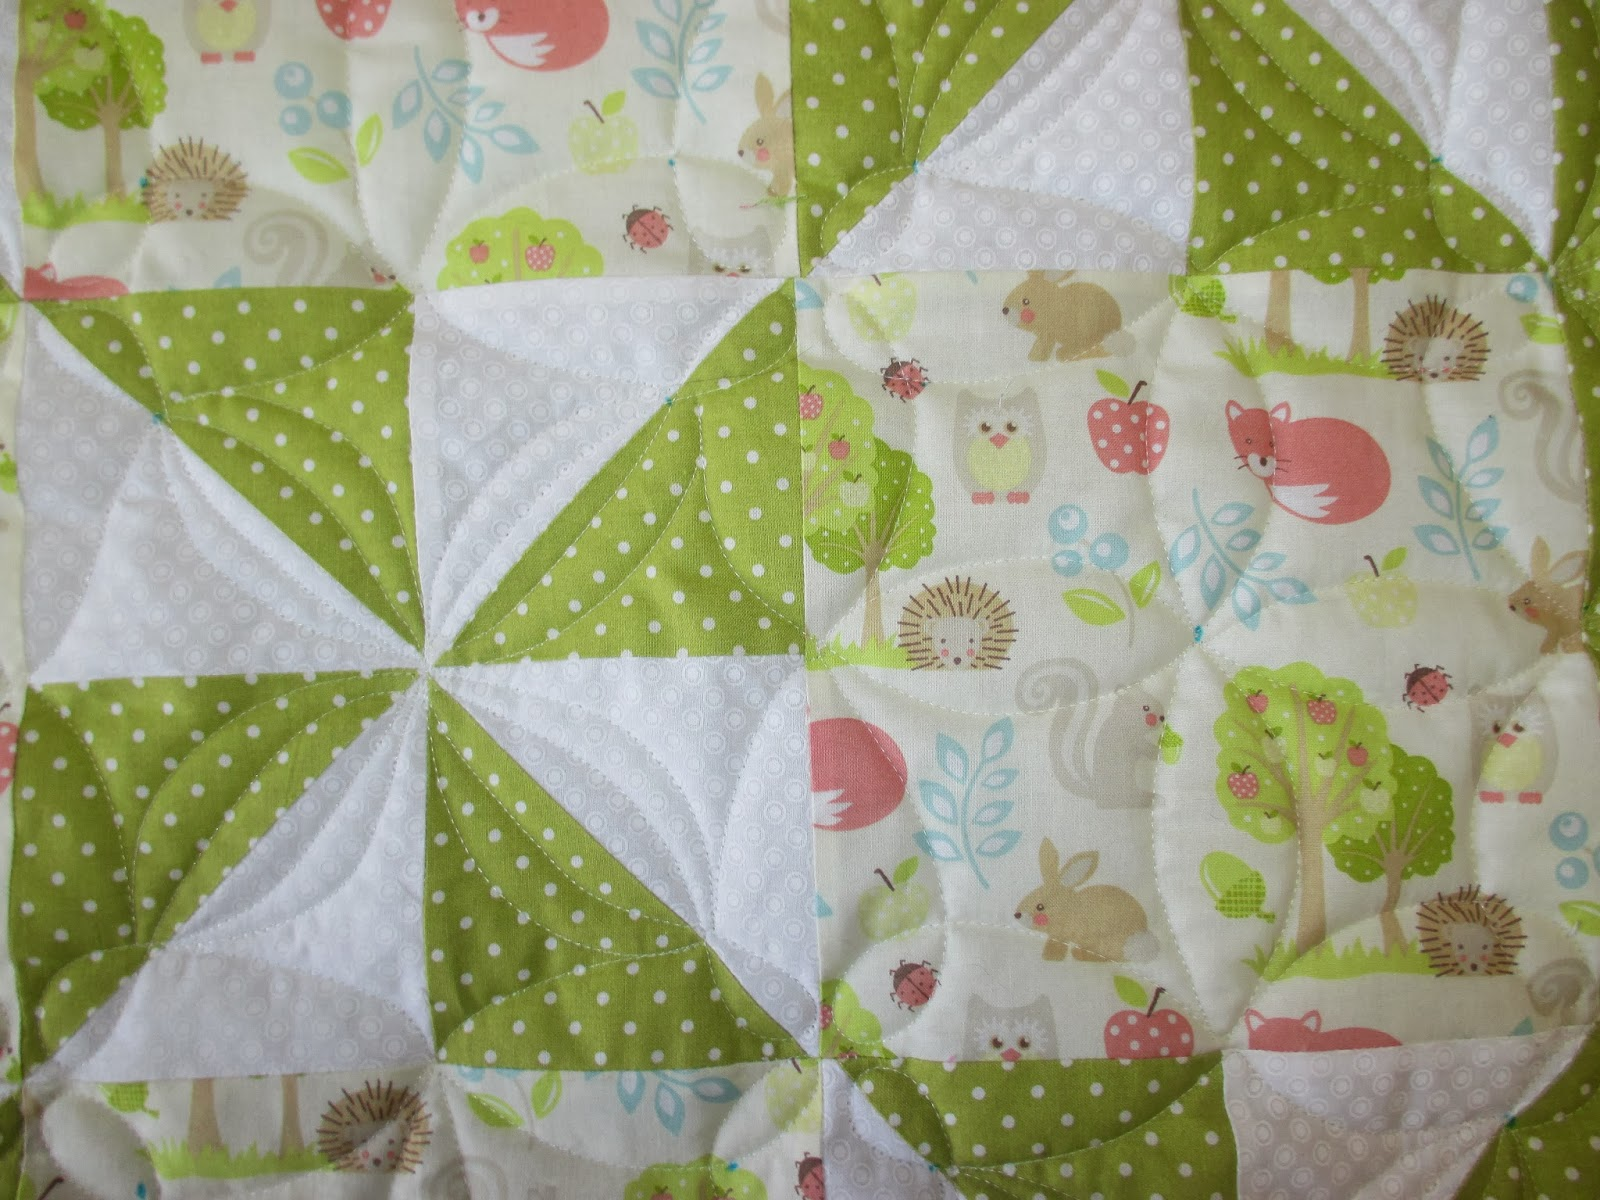 Down To Sew: Pinwheel Baby Quilt